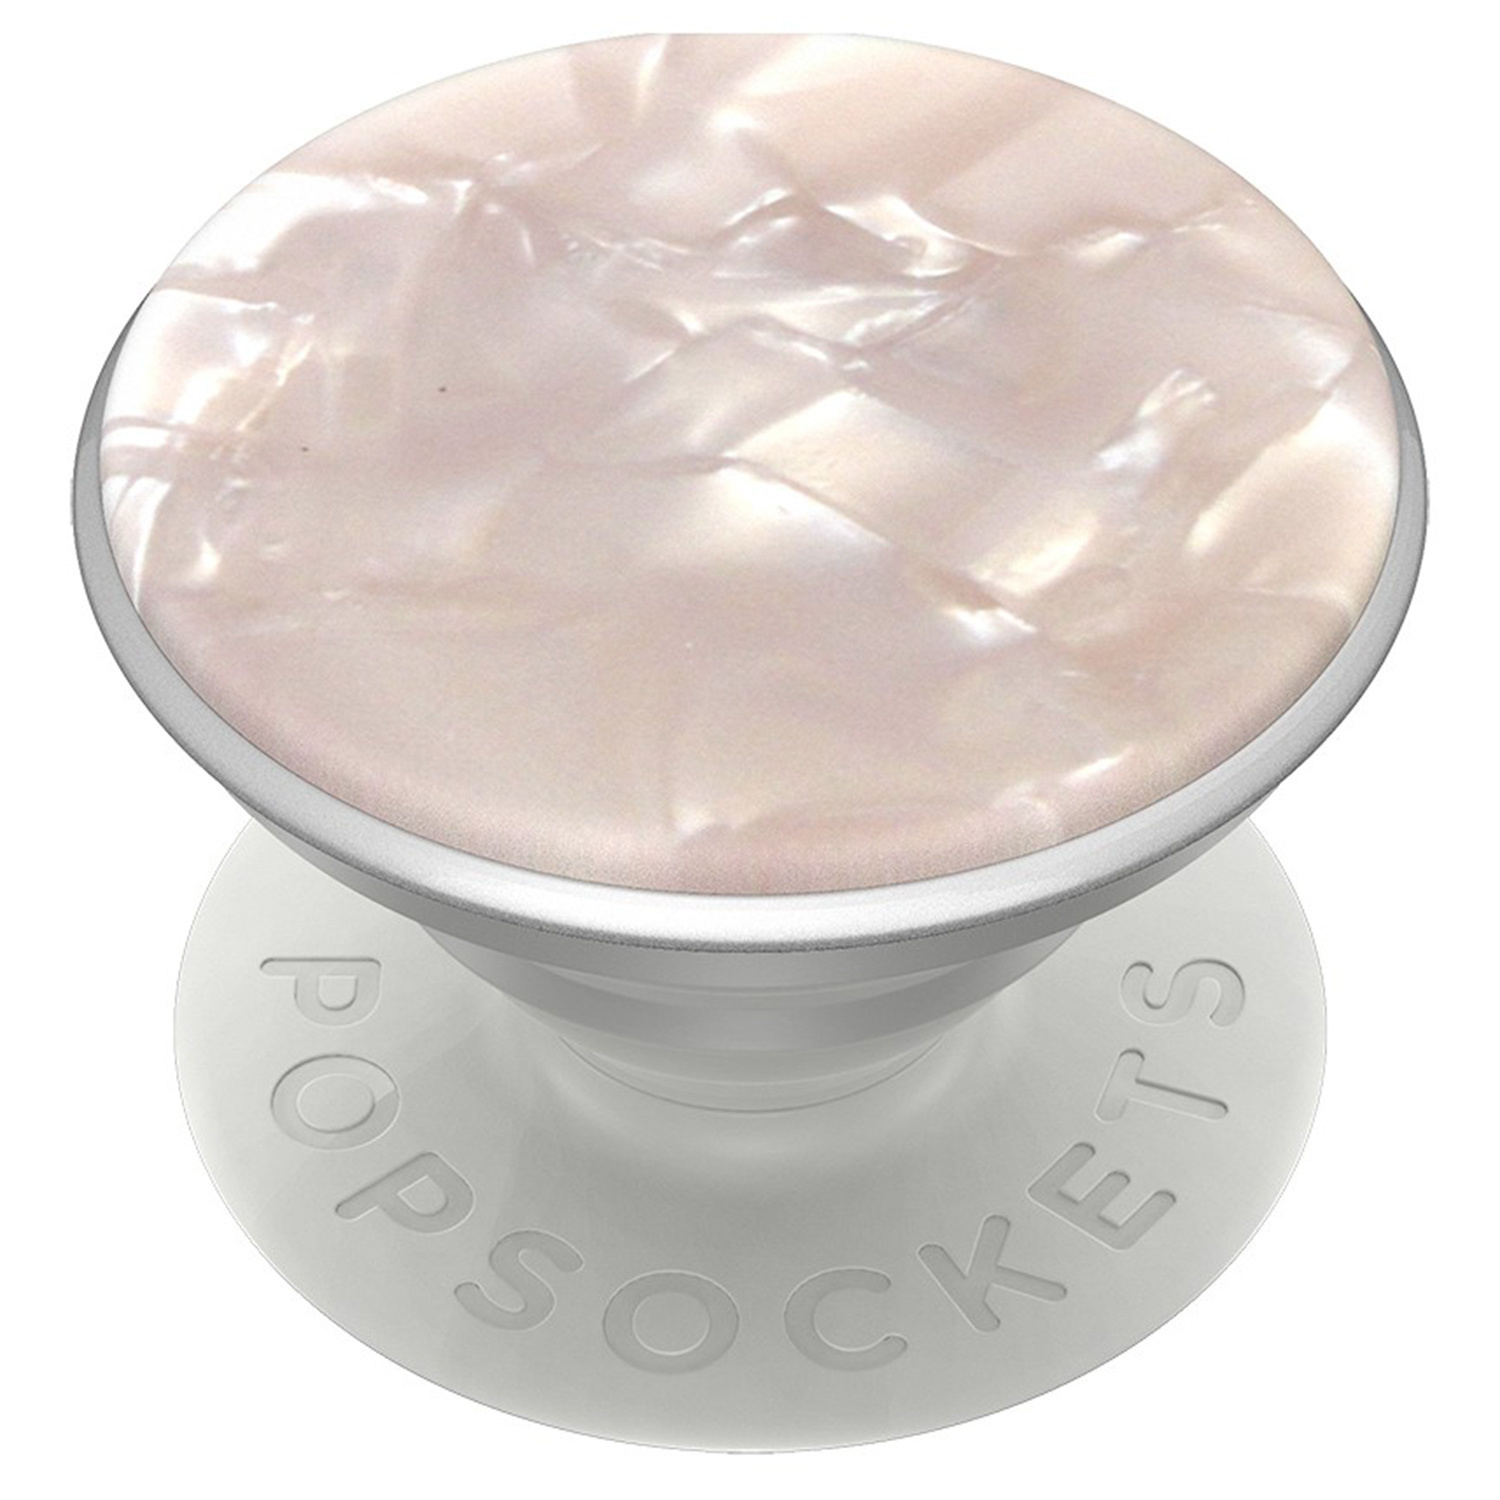 PopSockets Luxus PopGrip - Acetate Pearl White